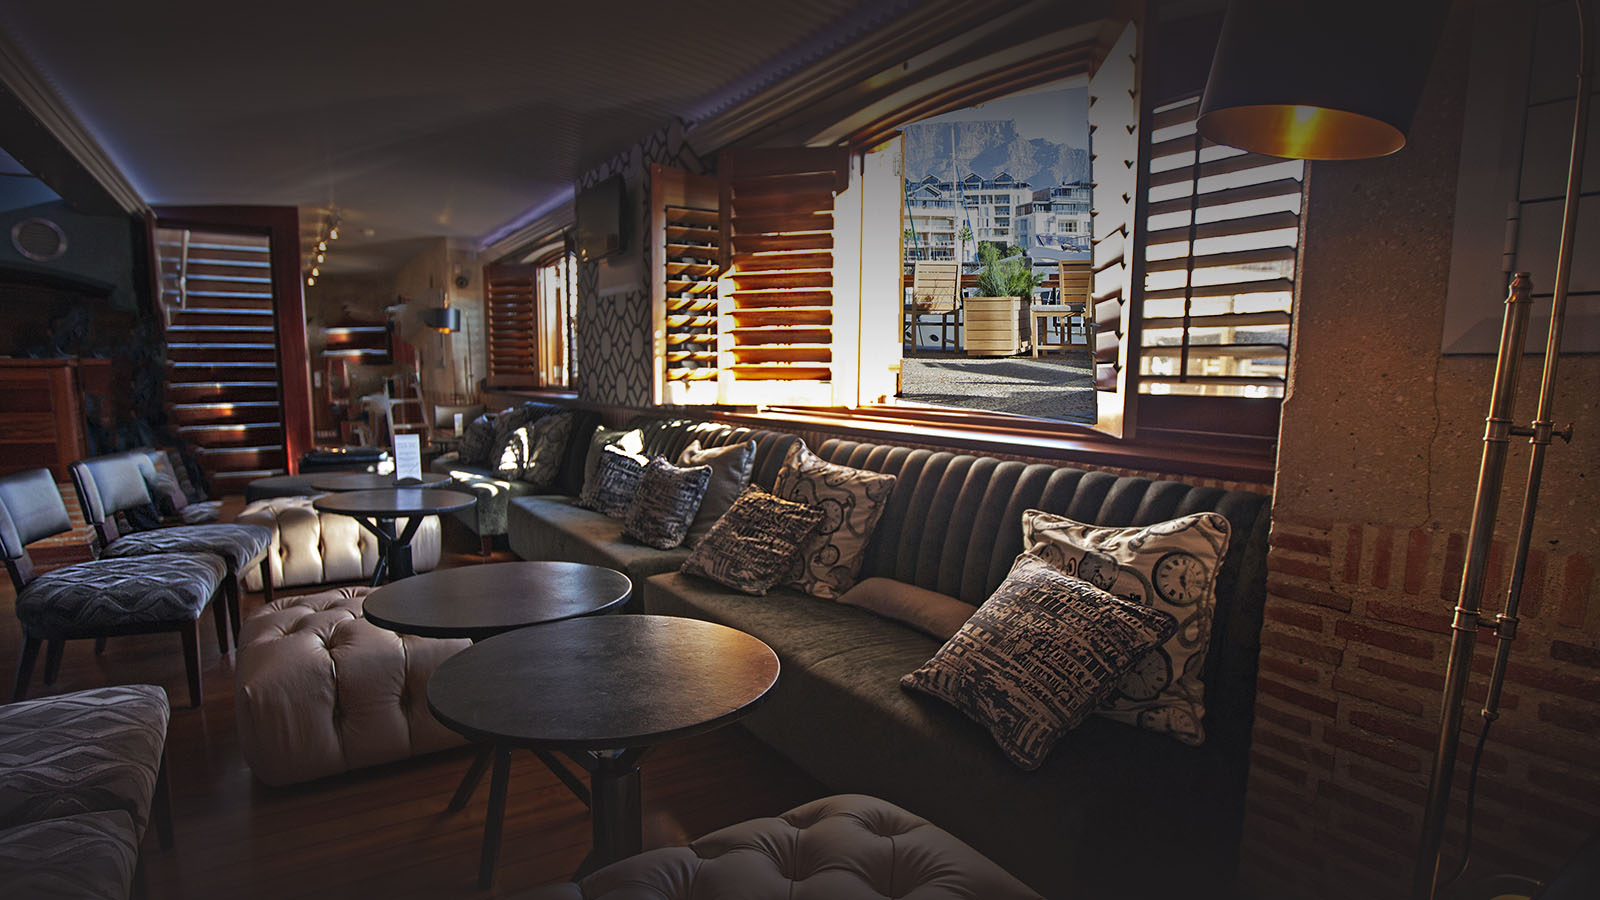 cape grace hotel-cape-town-lodges-zambia-in-style-south-africa-elegant-atmosphere-gorgeous-views-cocktail-bar